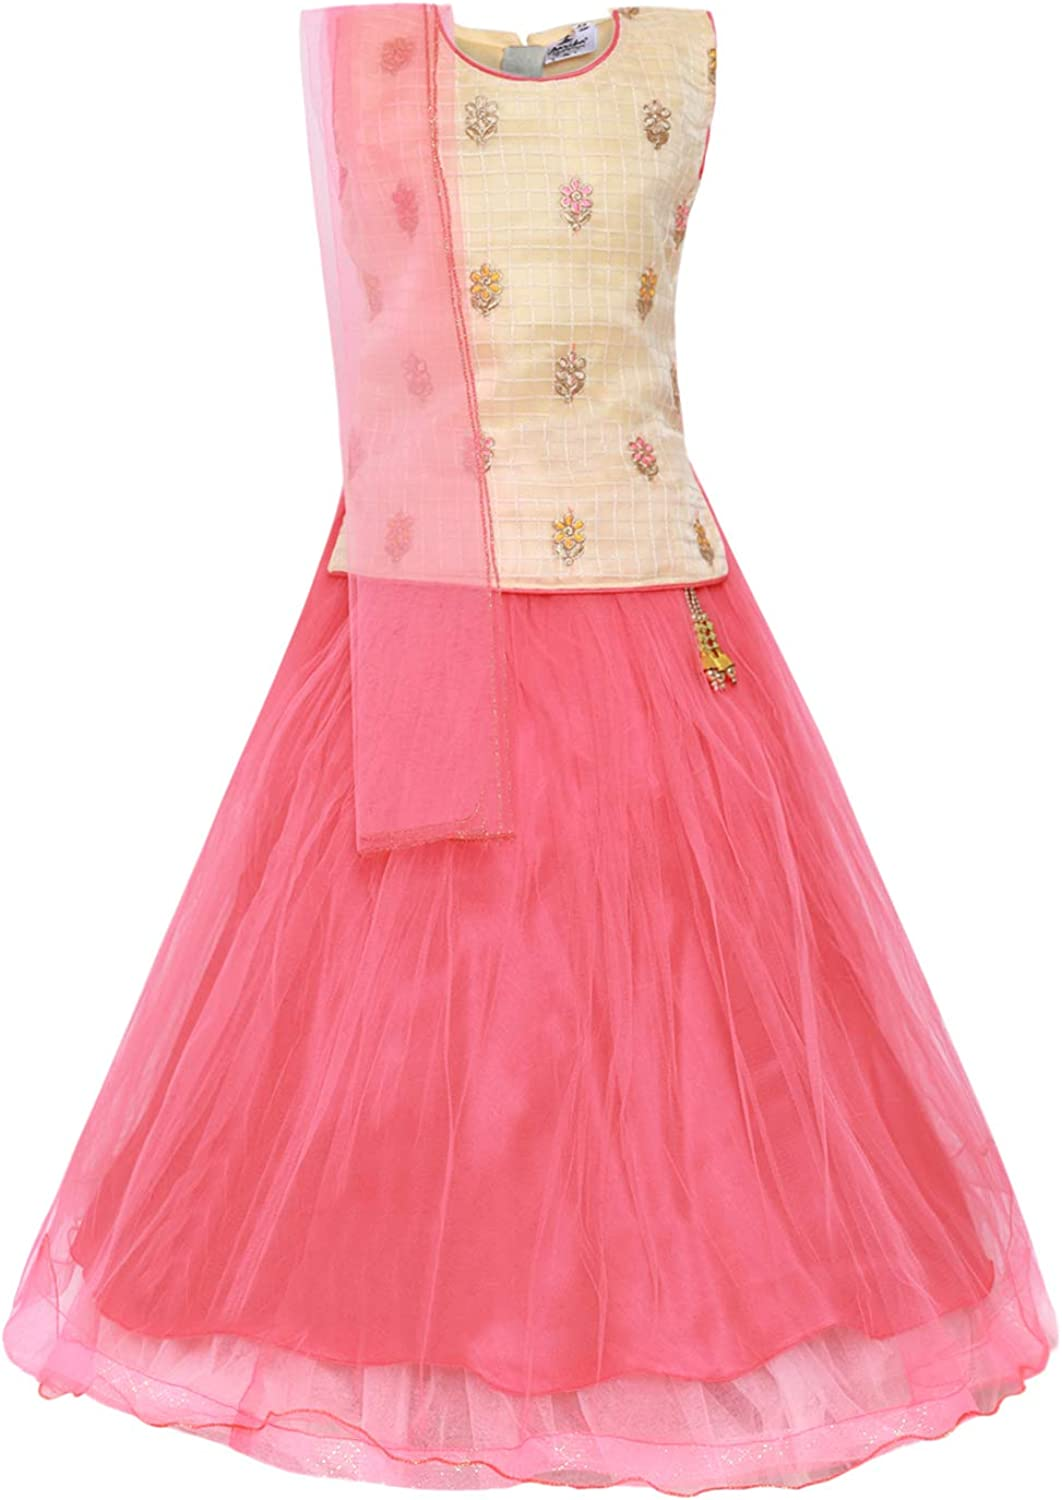 Aarika Girls dresses 86% Off from Rs 153  at Amazon